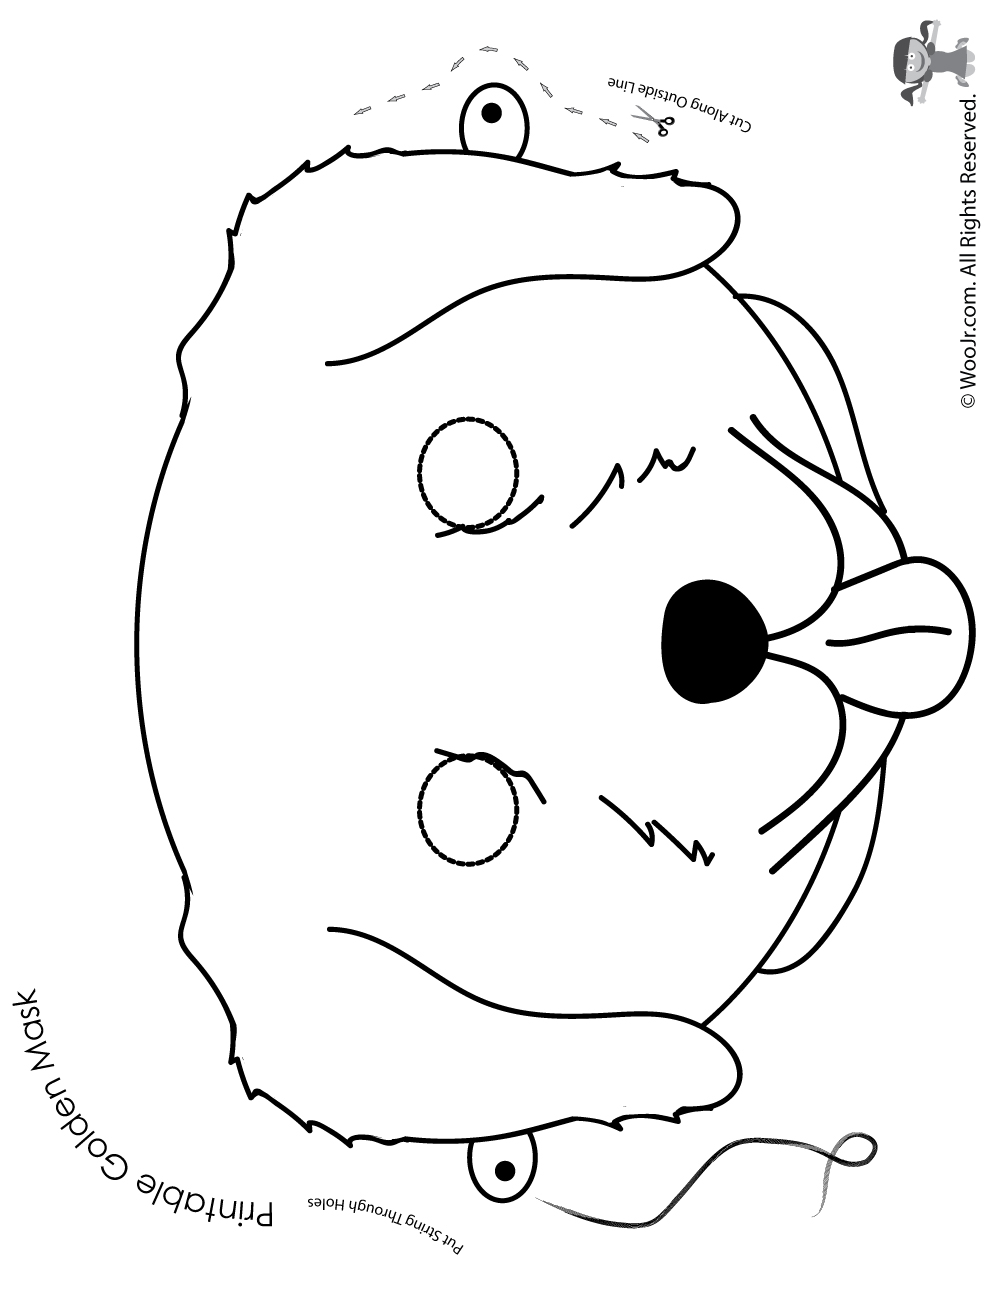 Free Printable Dog Mask: Golden Retriever Mask - Coloring Page